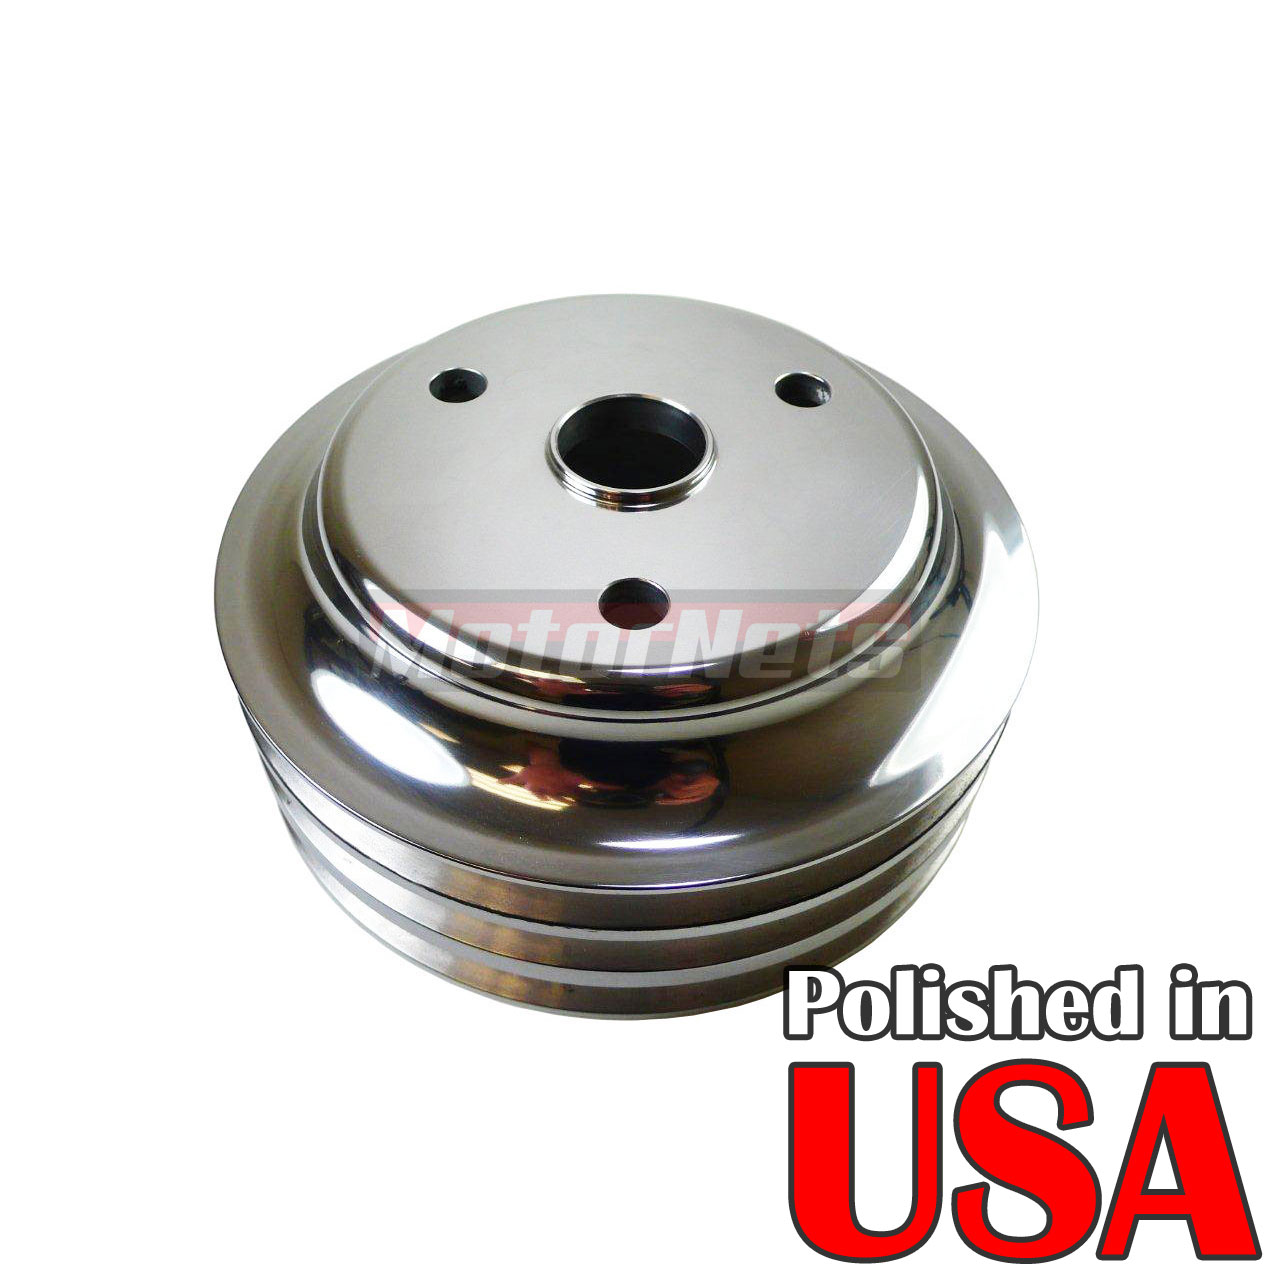 Polished Aluminum SBC Chevy 283-350 Crankshaft Pulley Long